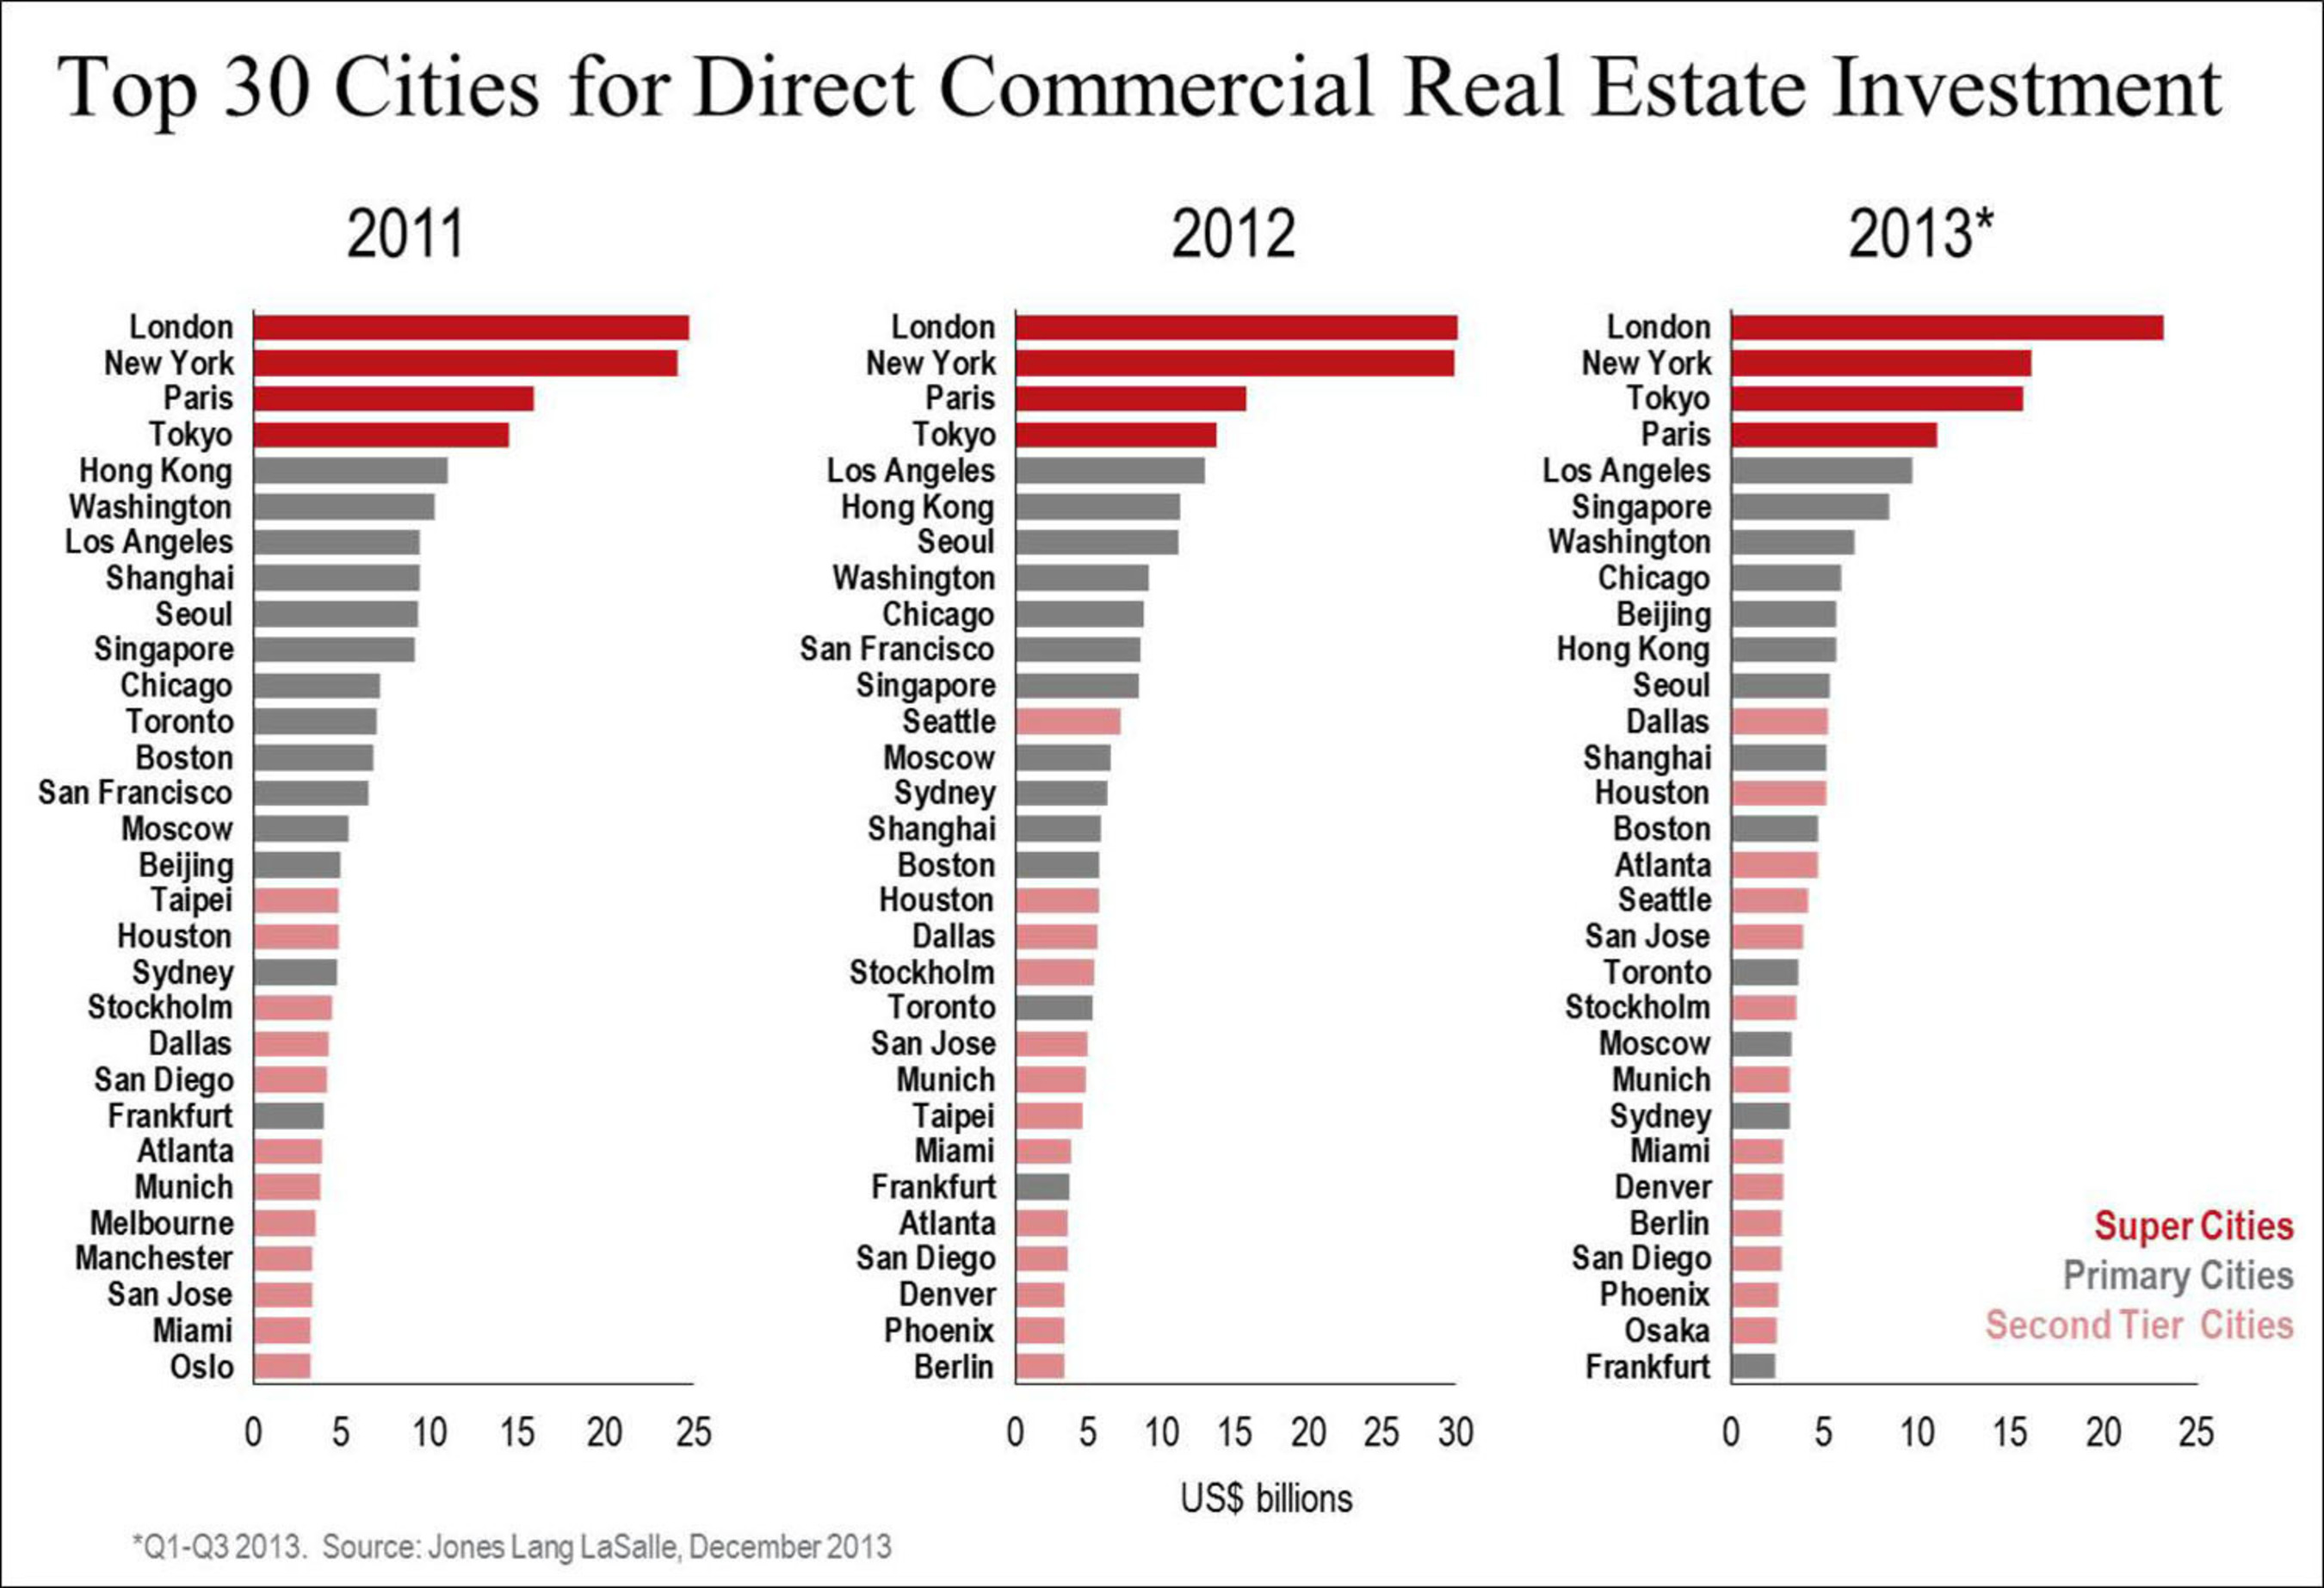 Top 30 Cities for Direct Commercial Real Estate Investment. (PRNewsFoto/Jones Lang LaSalle) (PRNewsFoto/JONES LANG LASALLE)